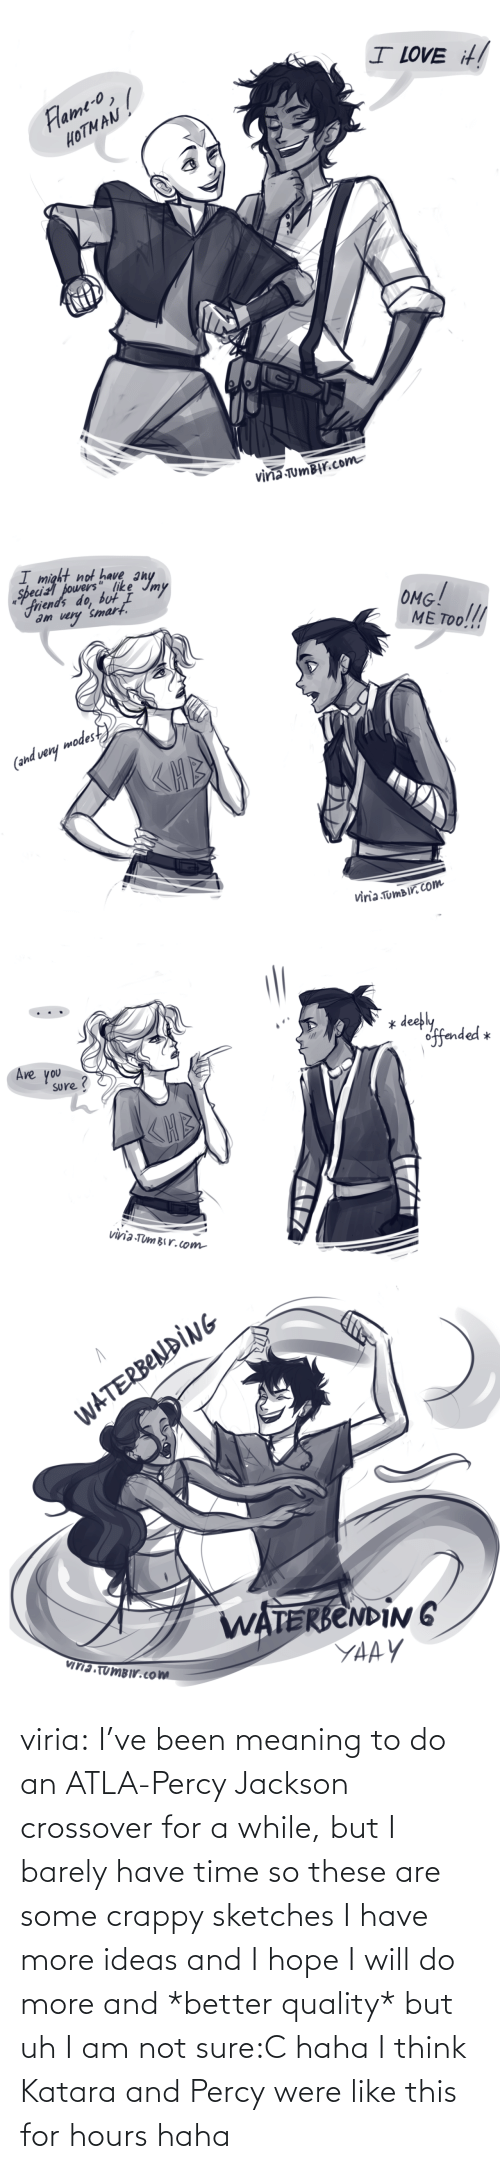 sure: viria:  I've been meaning to do an ATLA-Percy Jackson crossover for a while, but I barely have time so these are some crappy sketches I have more ideas and I hope I will do more and *better quality* but uh I am not sure:C haha I think Katara and Percy were like this for hours haha